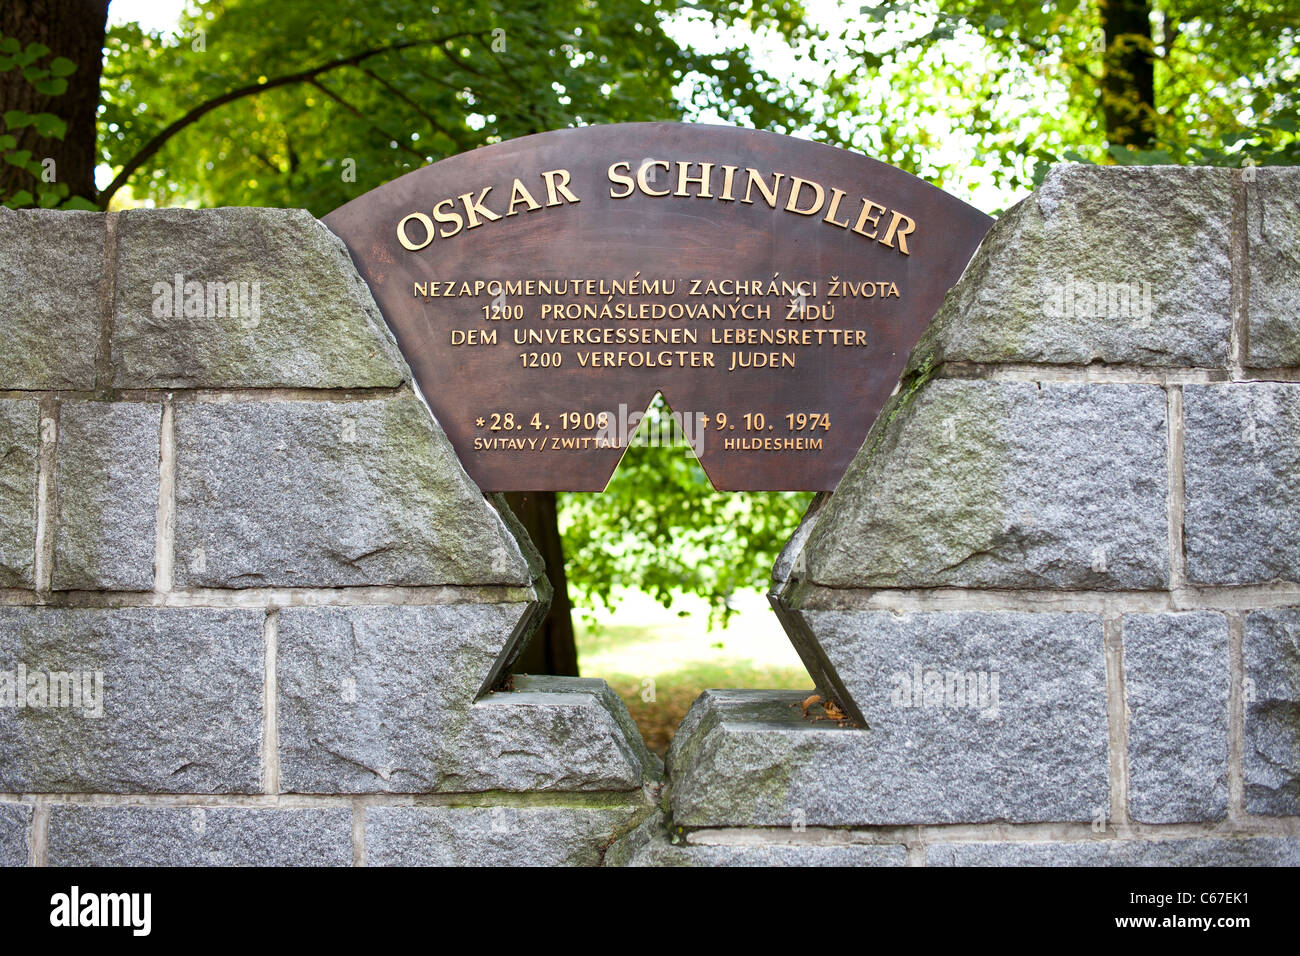 Detail of monument to Oskar Schindler over the road vis-a-vis of his birthplace in his native town. - Stock Image